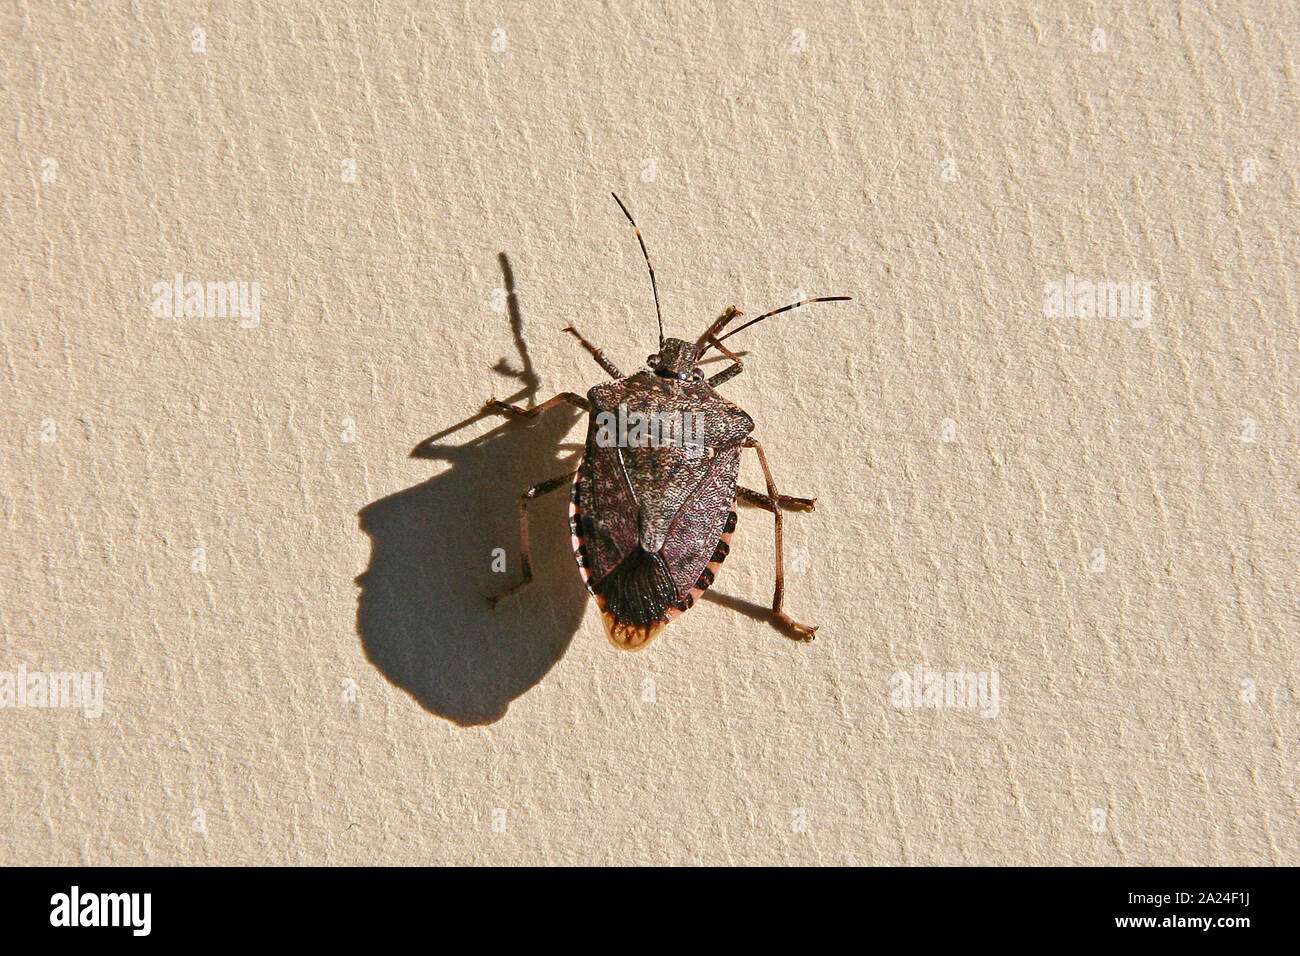 brown marmorated stink bug or shield bug Latin halyomorpha halys family pentatomidae native to China and Asia now a serious pest in Europe and the USA Stock Photo